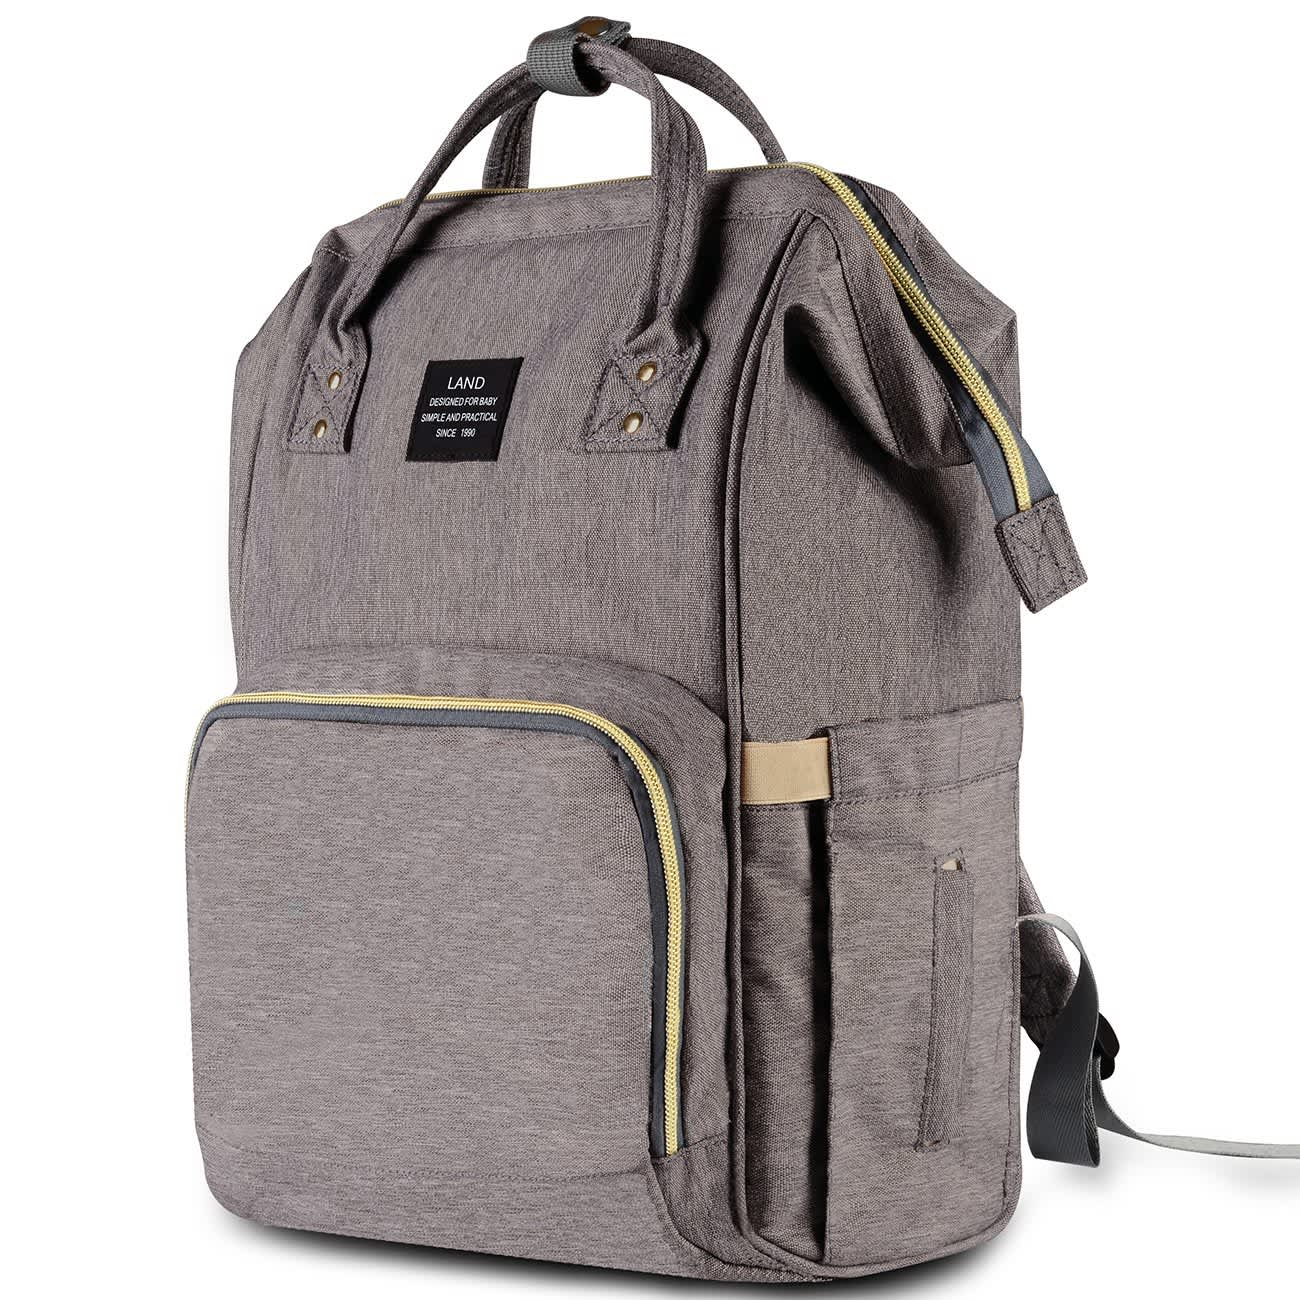 Multi Function Diaper Bag